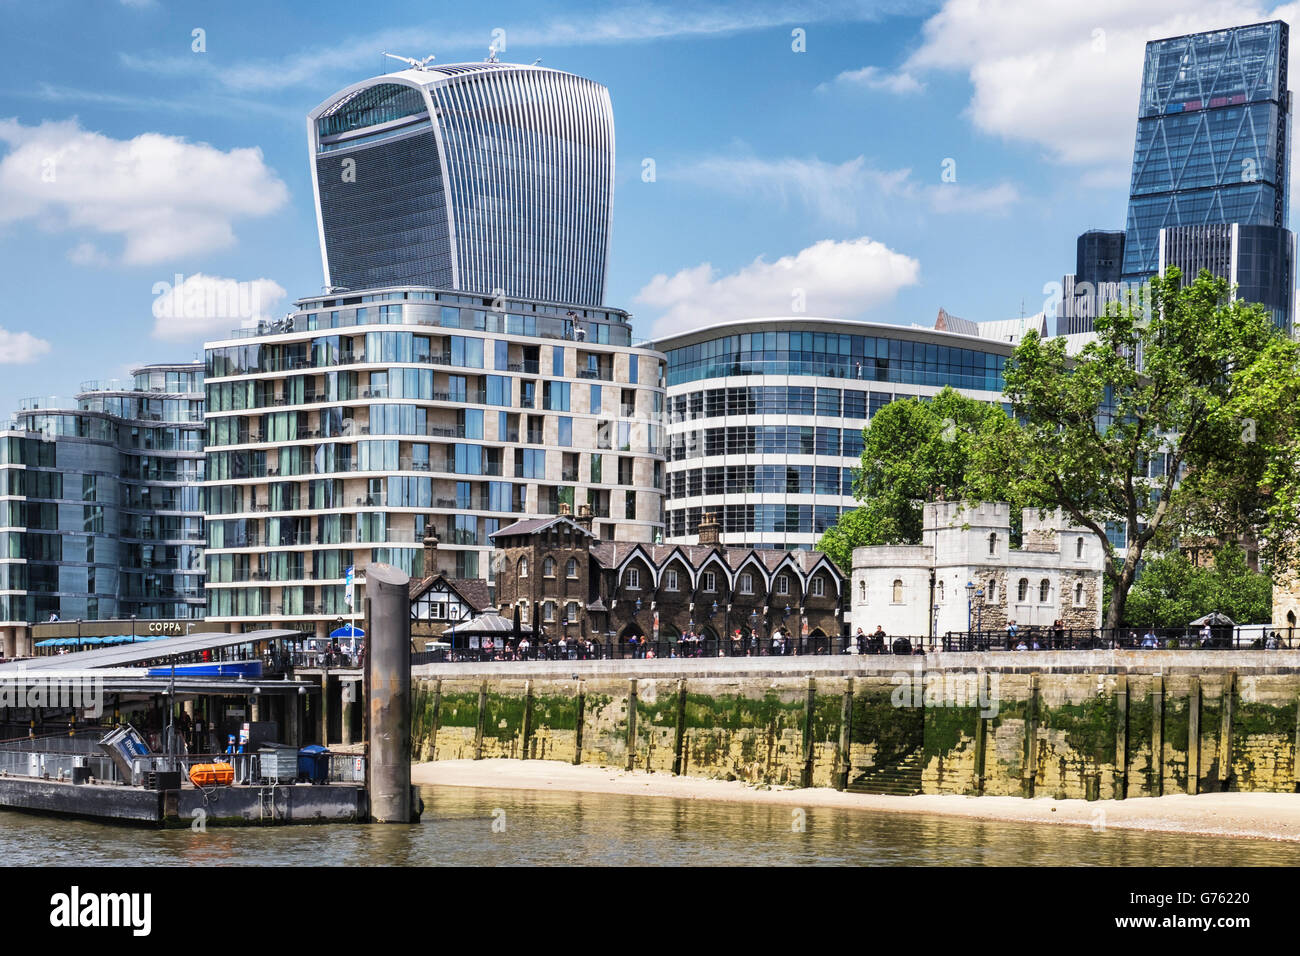 London old & new riverside buildings, The Walkie Talkie and The Cheese grater and the historic Tower of London - Stock Image